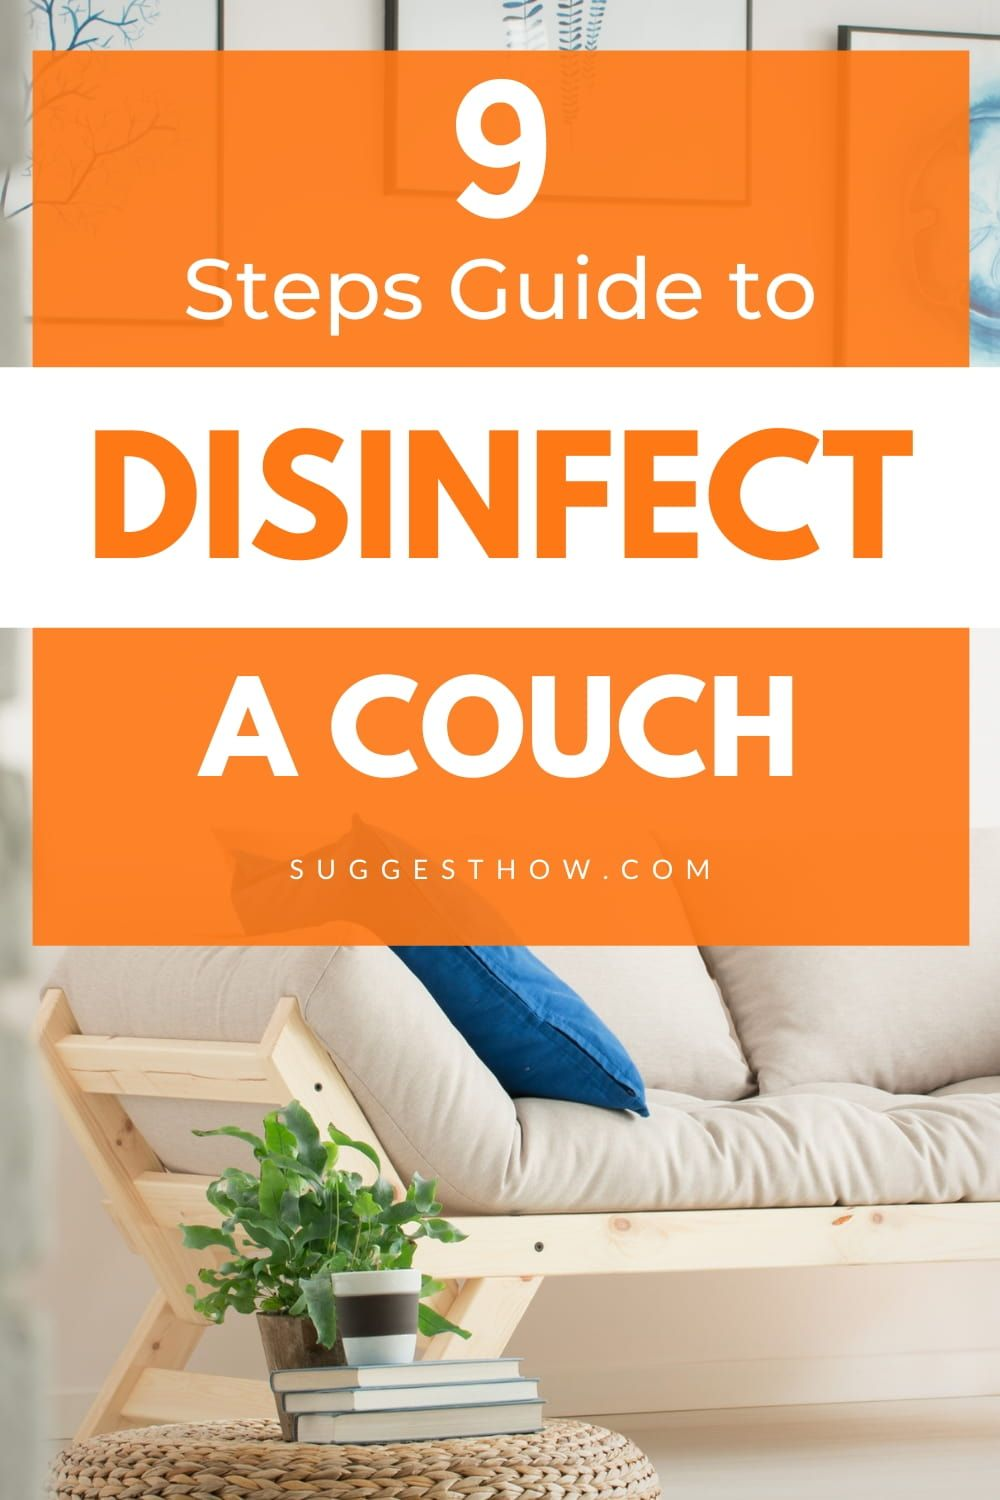 How To Disinfect A Couch Follow 9 Steps Properly Clean Couch